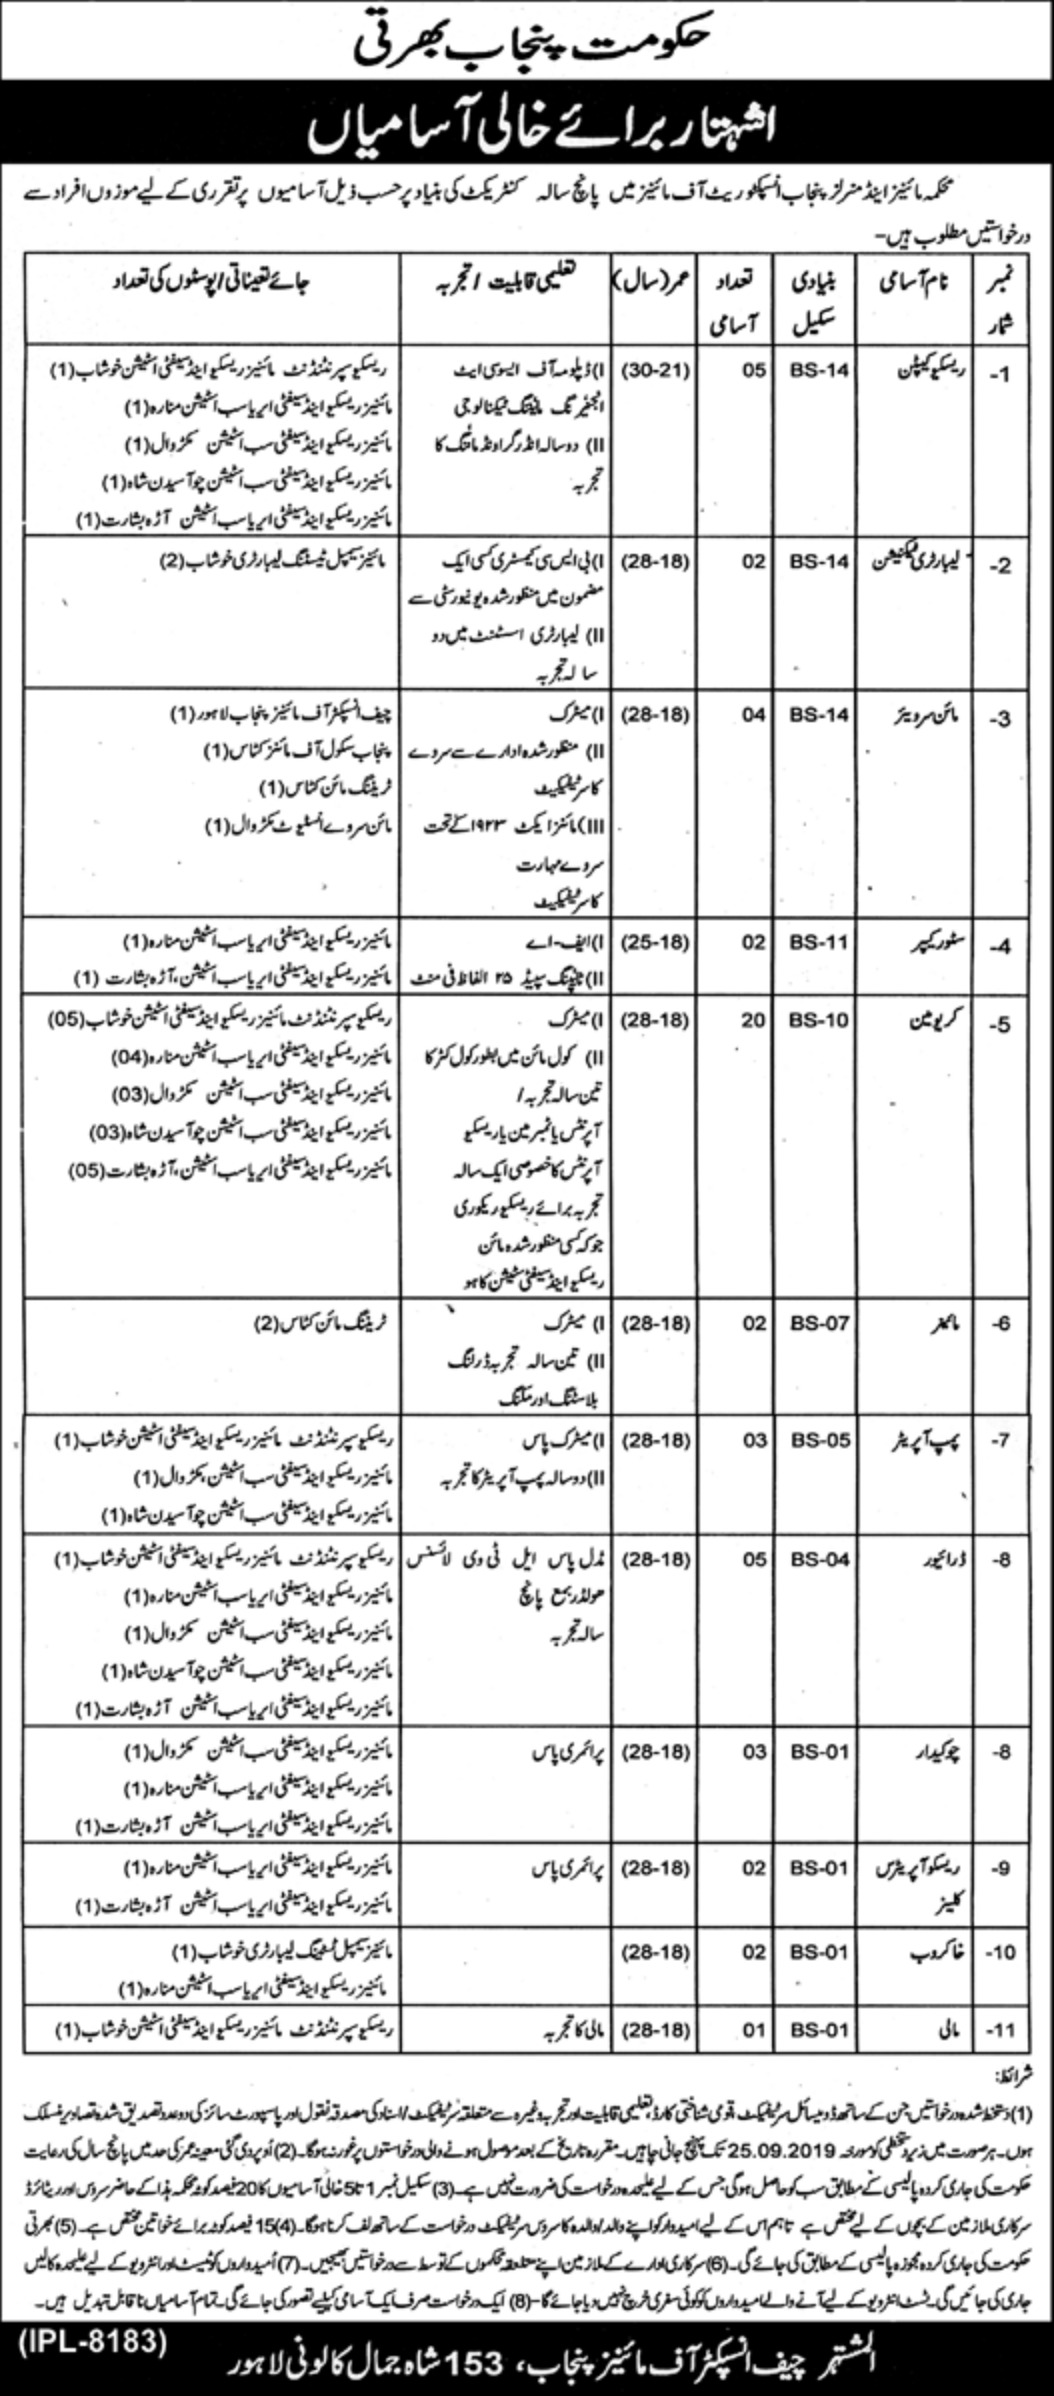 Mines & Minerals Department Punjab Jobs 2019 Inspectorate of Mines